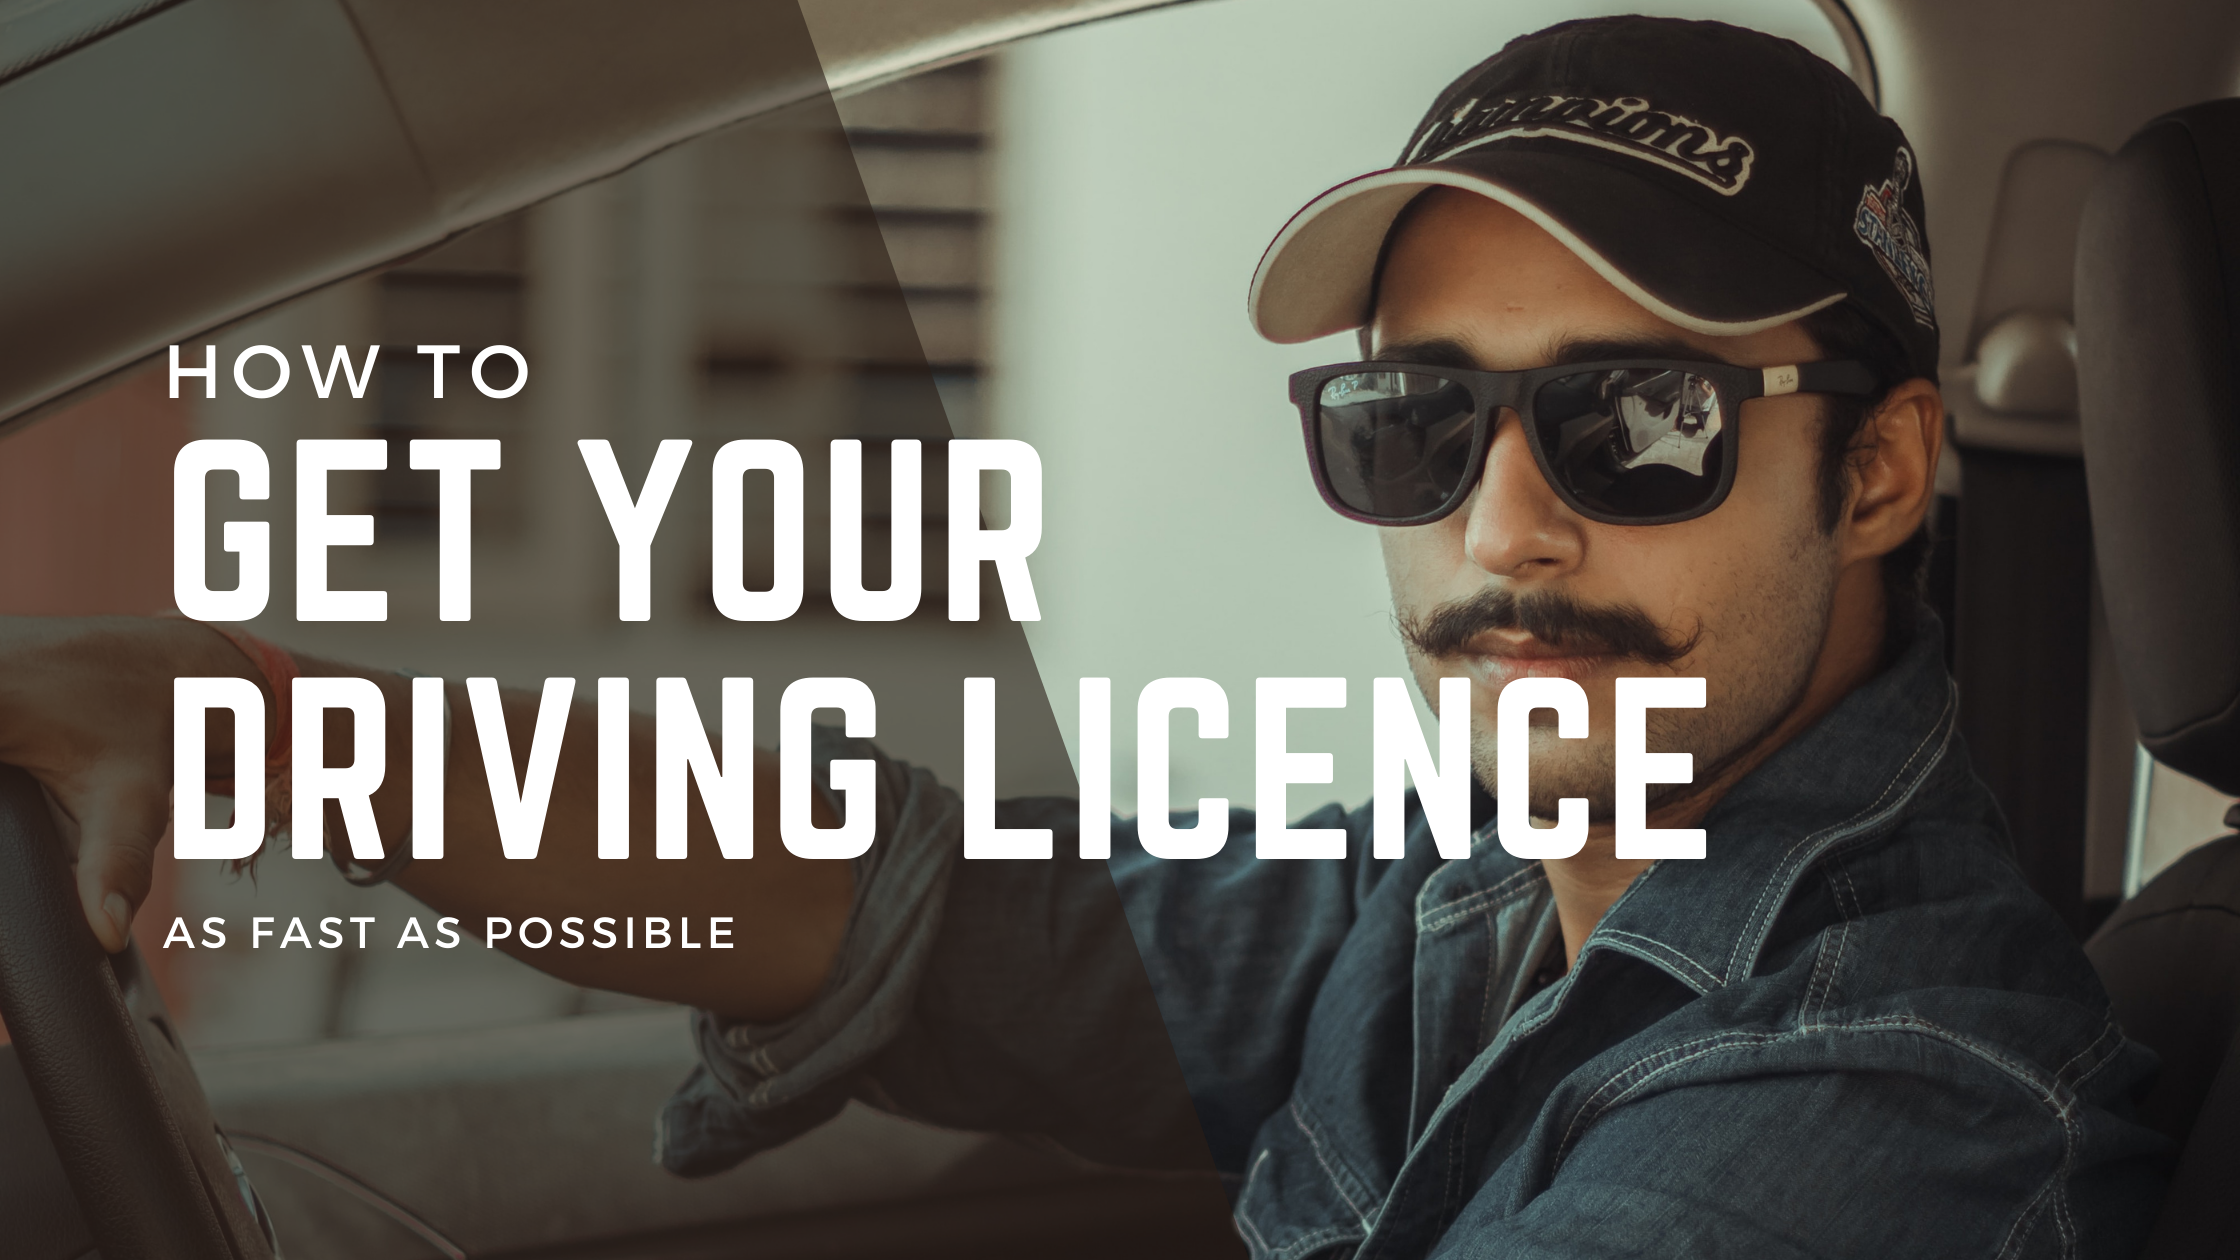 How to get your driving licence as fast as possible